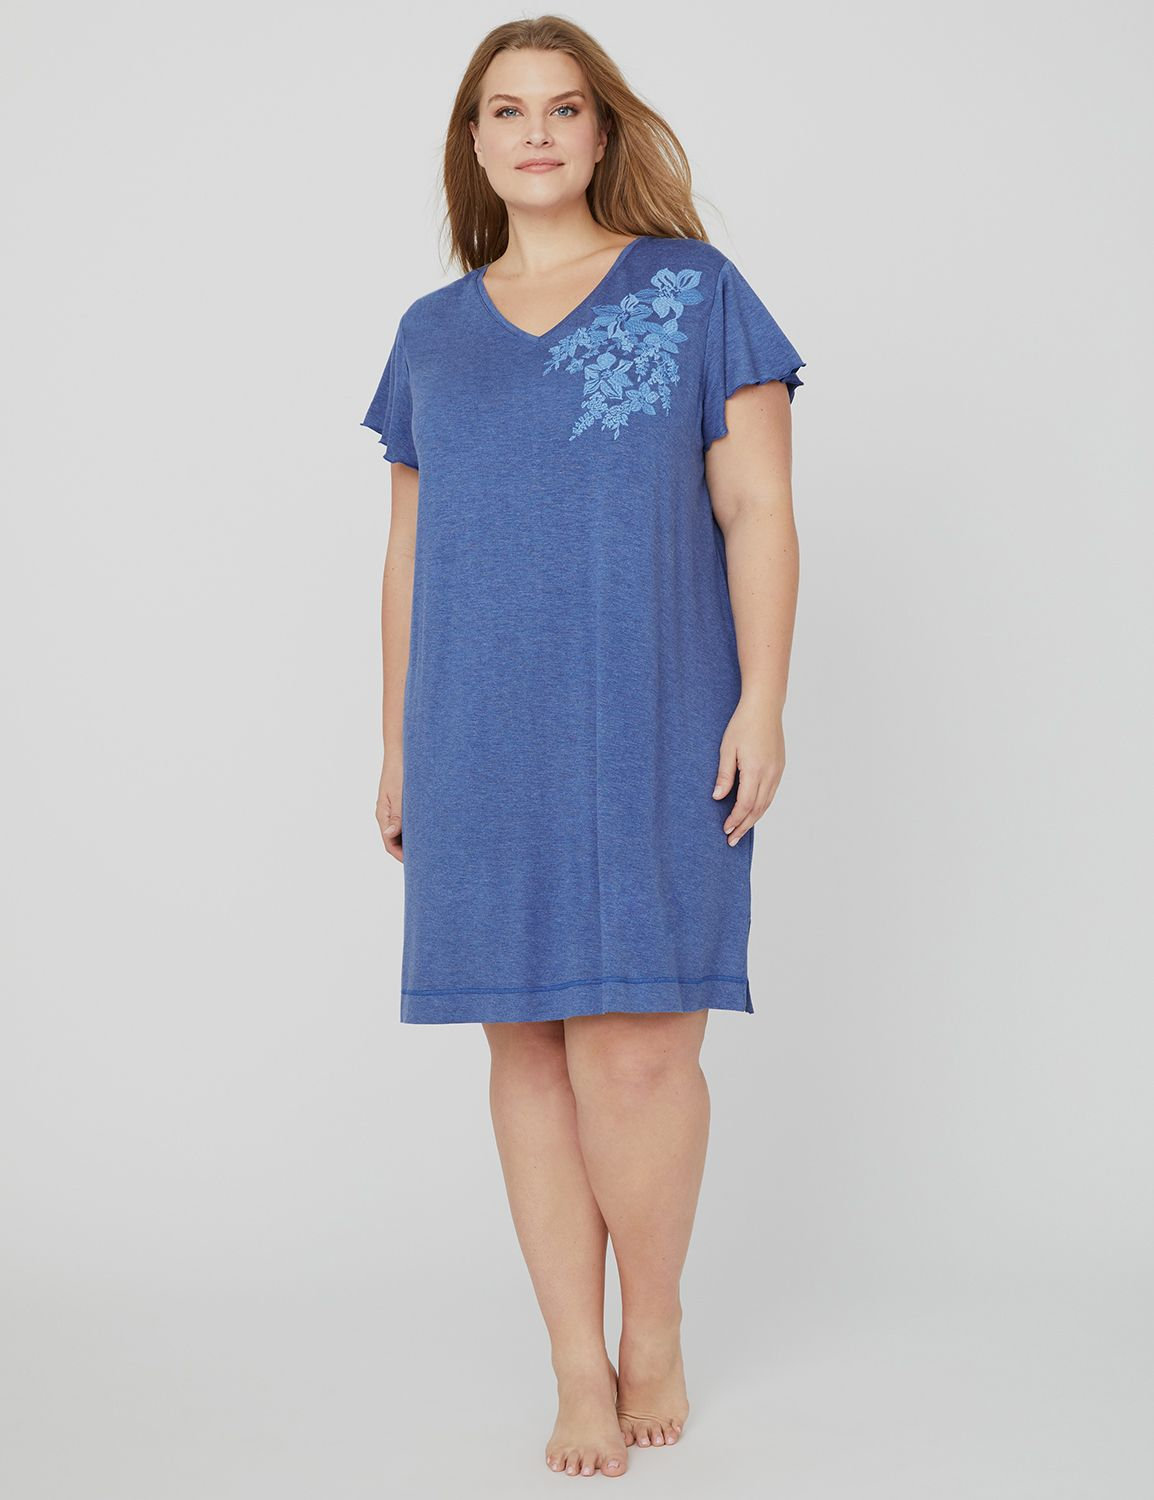 Embroidered Terry Sleep Tee 1088486- Embroidered SS f/t sleepsh MP-300096235